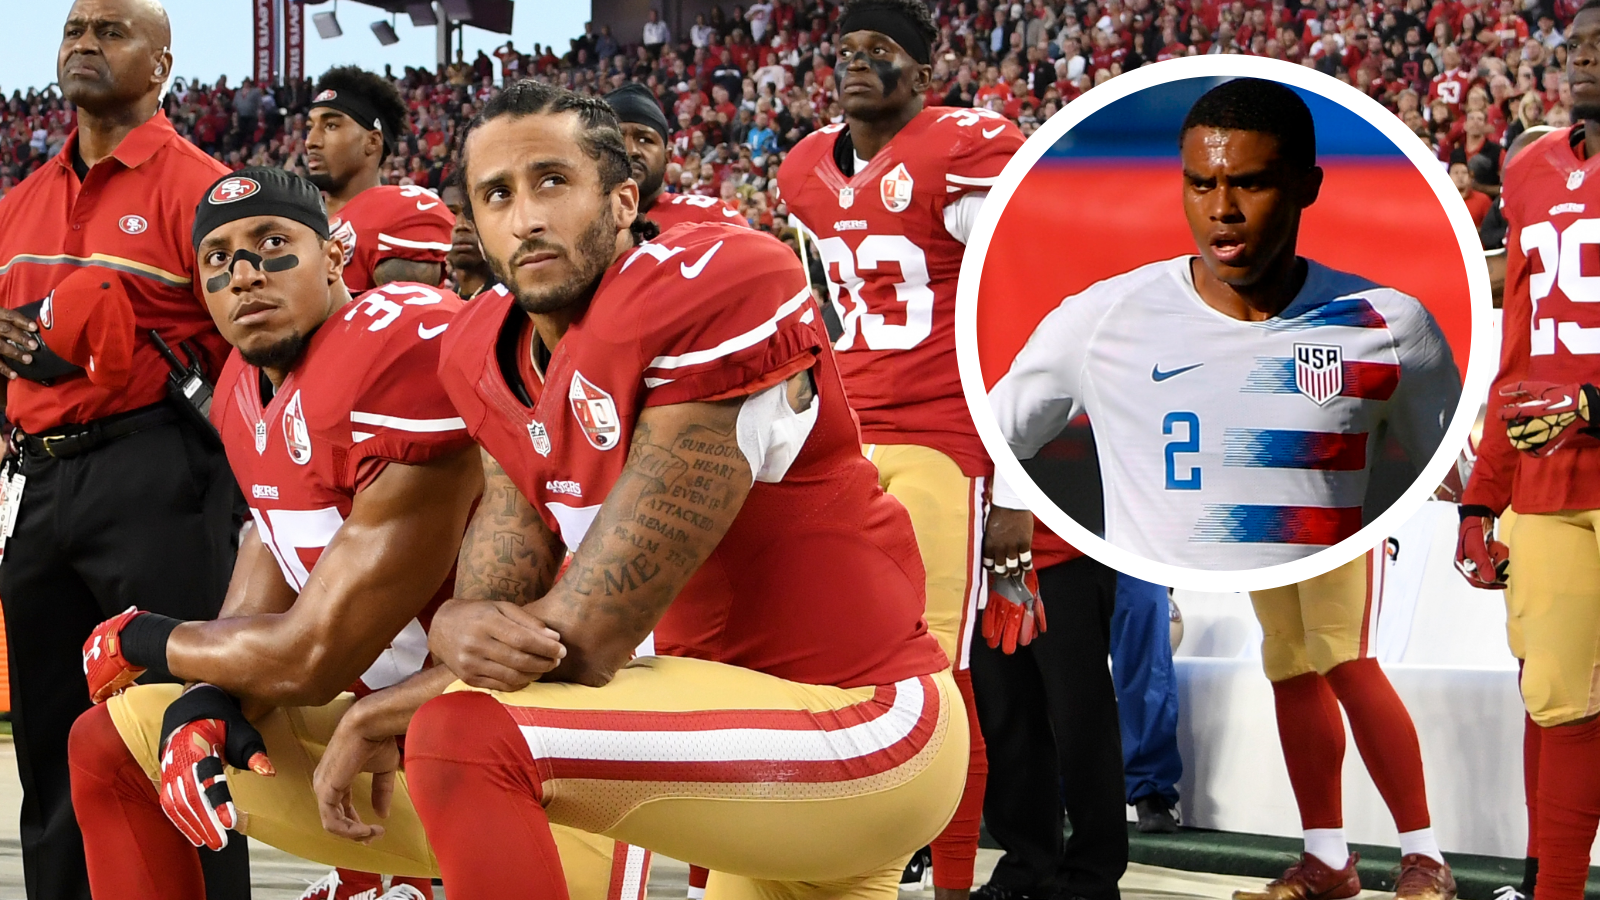 USMNT's Cannon: Kaepernick was right all along with racism protest